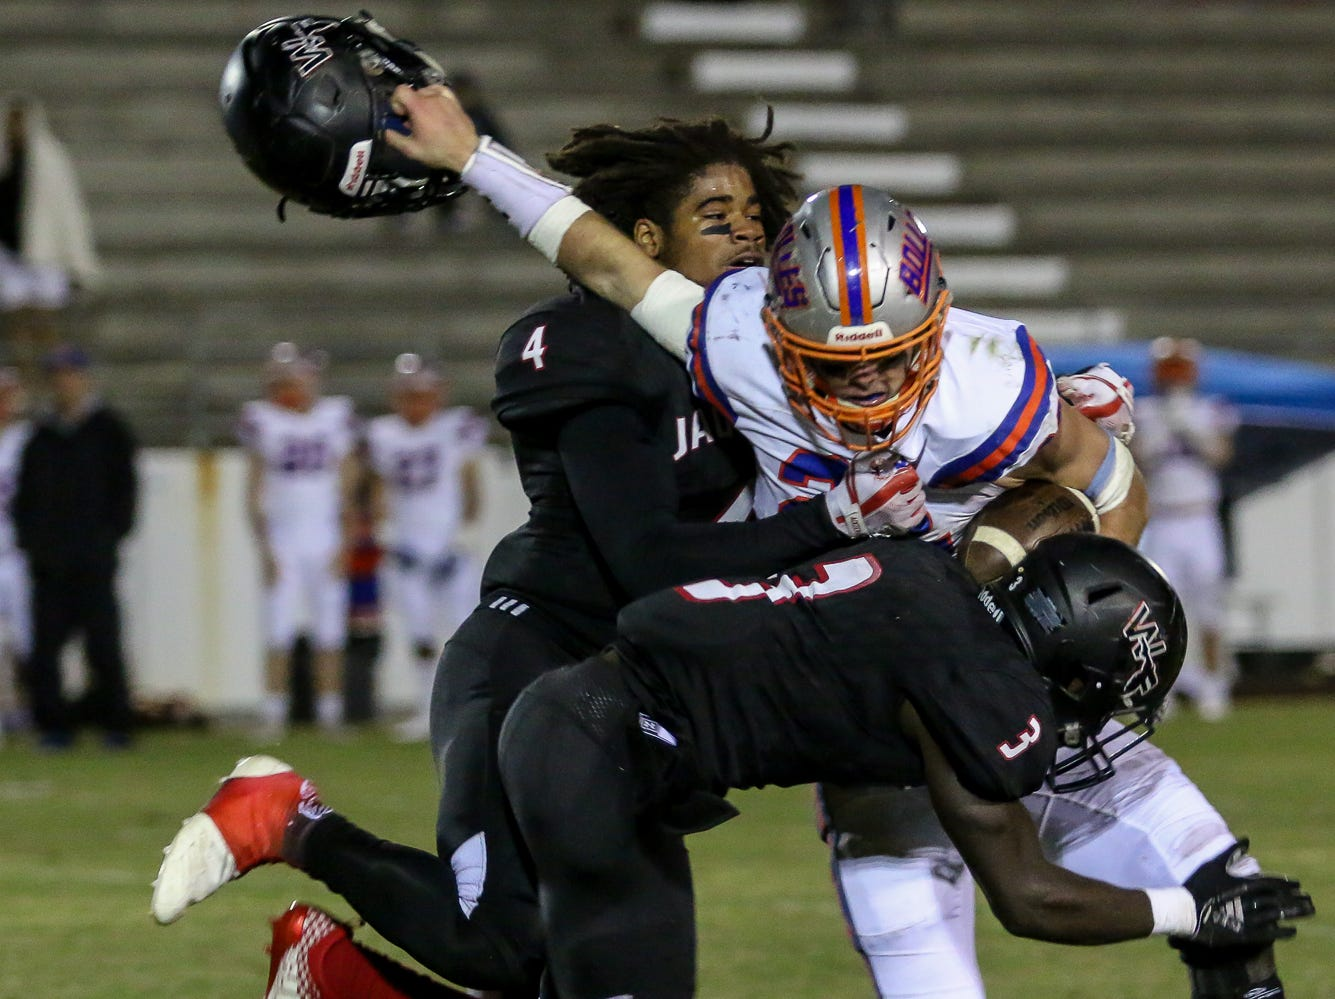 West Florida Tech's Antarrius Moultrie (4) has his helmet ripped off by Jacksonville Bolles' CJ Grimes (22) as teammate Keyshawn Swanson (3) comes in to help with the tackle in the Region 1-5A quarterfinal game at Woodham Middle School on Friday, November 9, 2018.